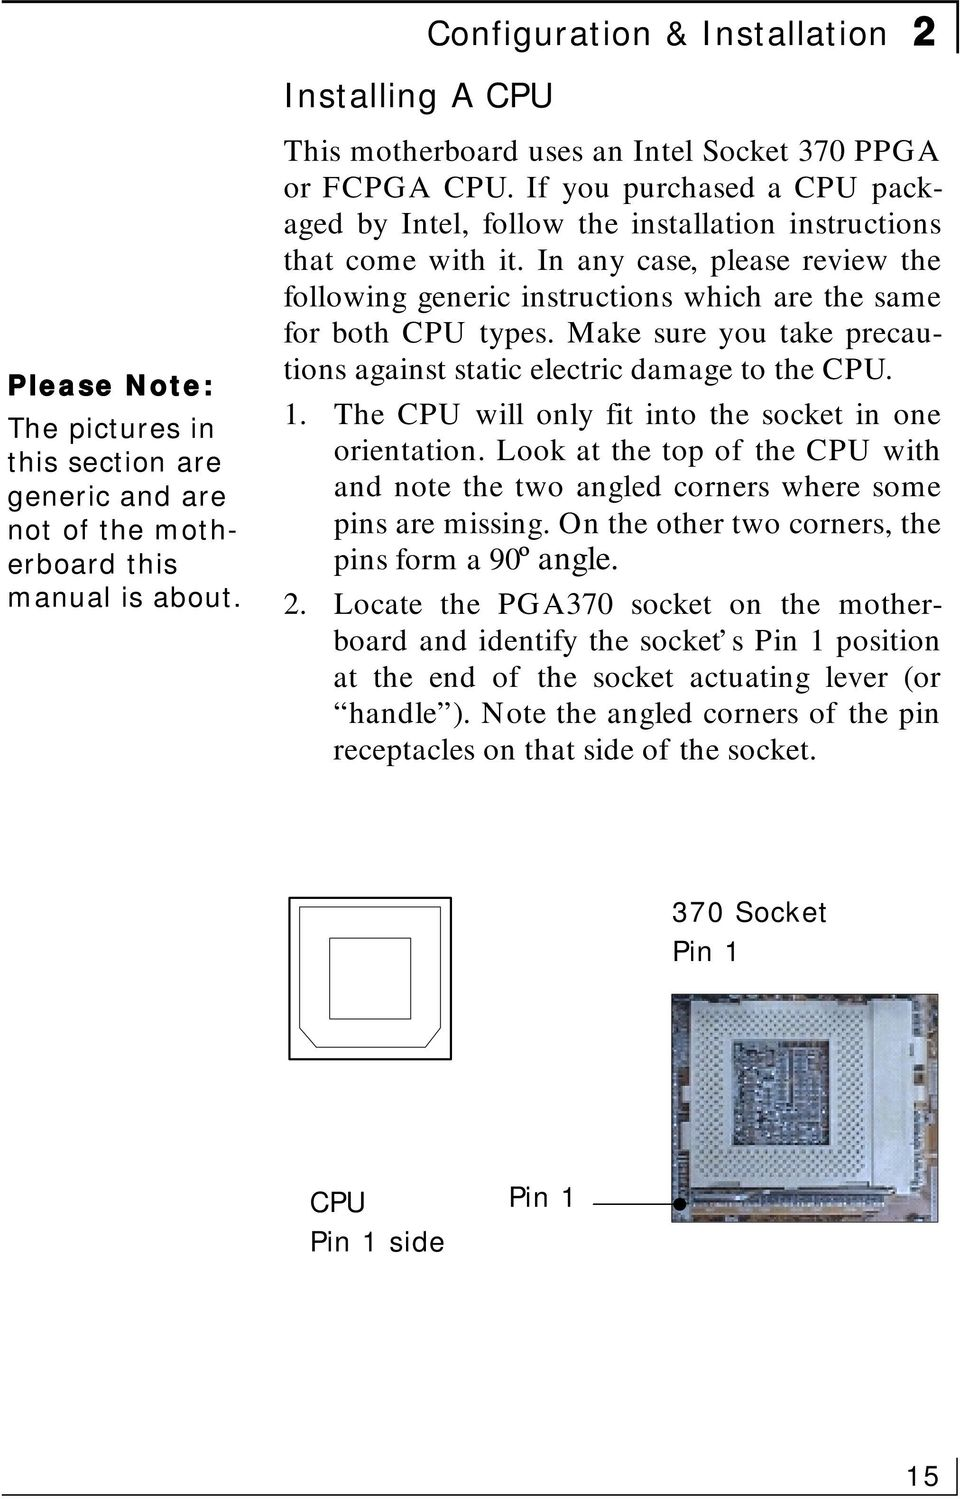 In any case, please review the following generic instructions which are the same for both CPU types. Make sure you take precautions against static electric damage to the CPU. 1.